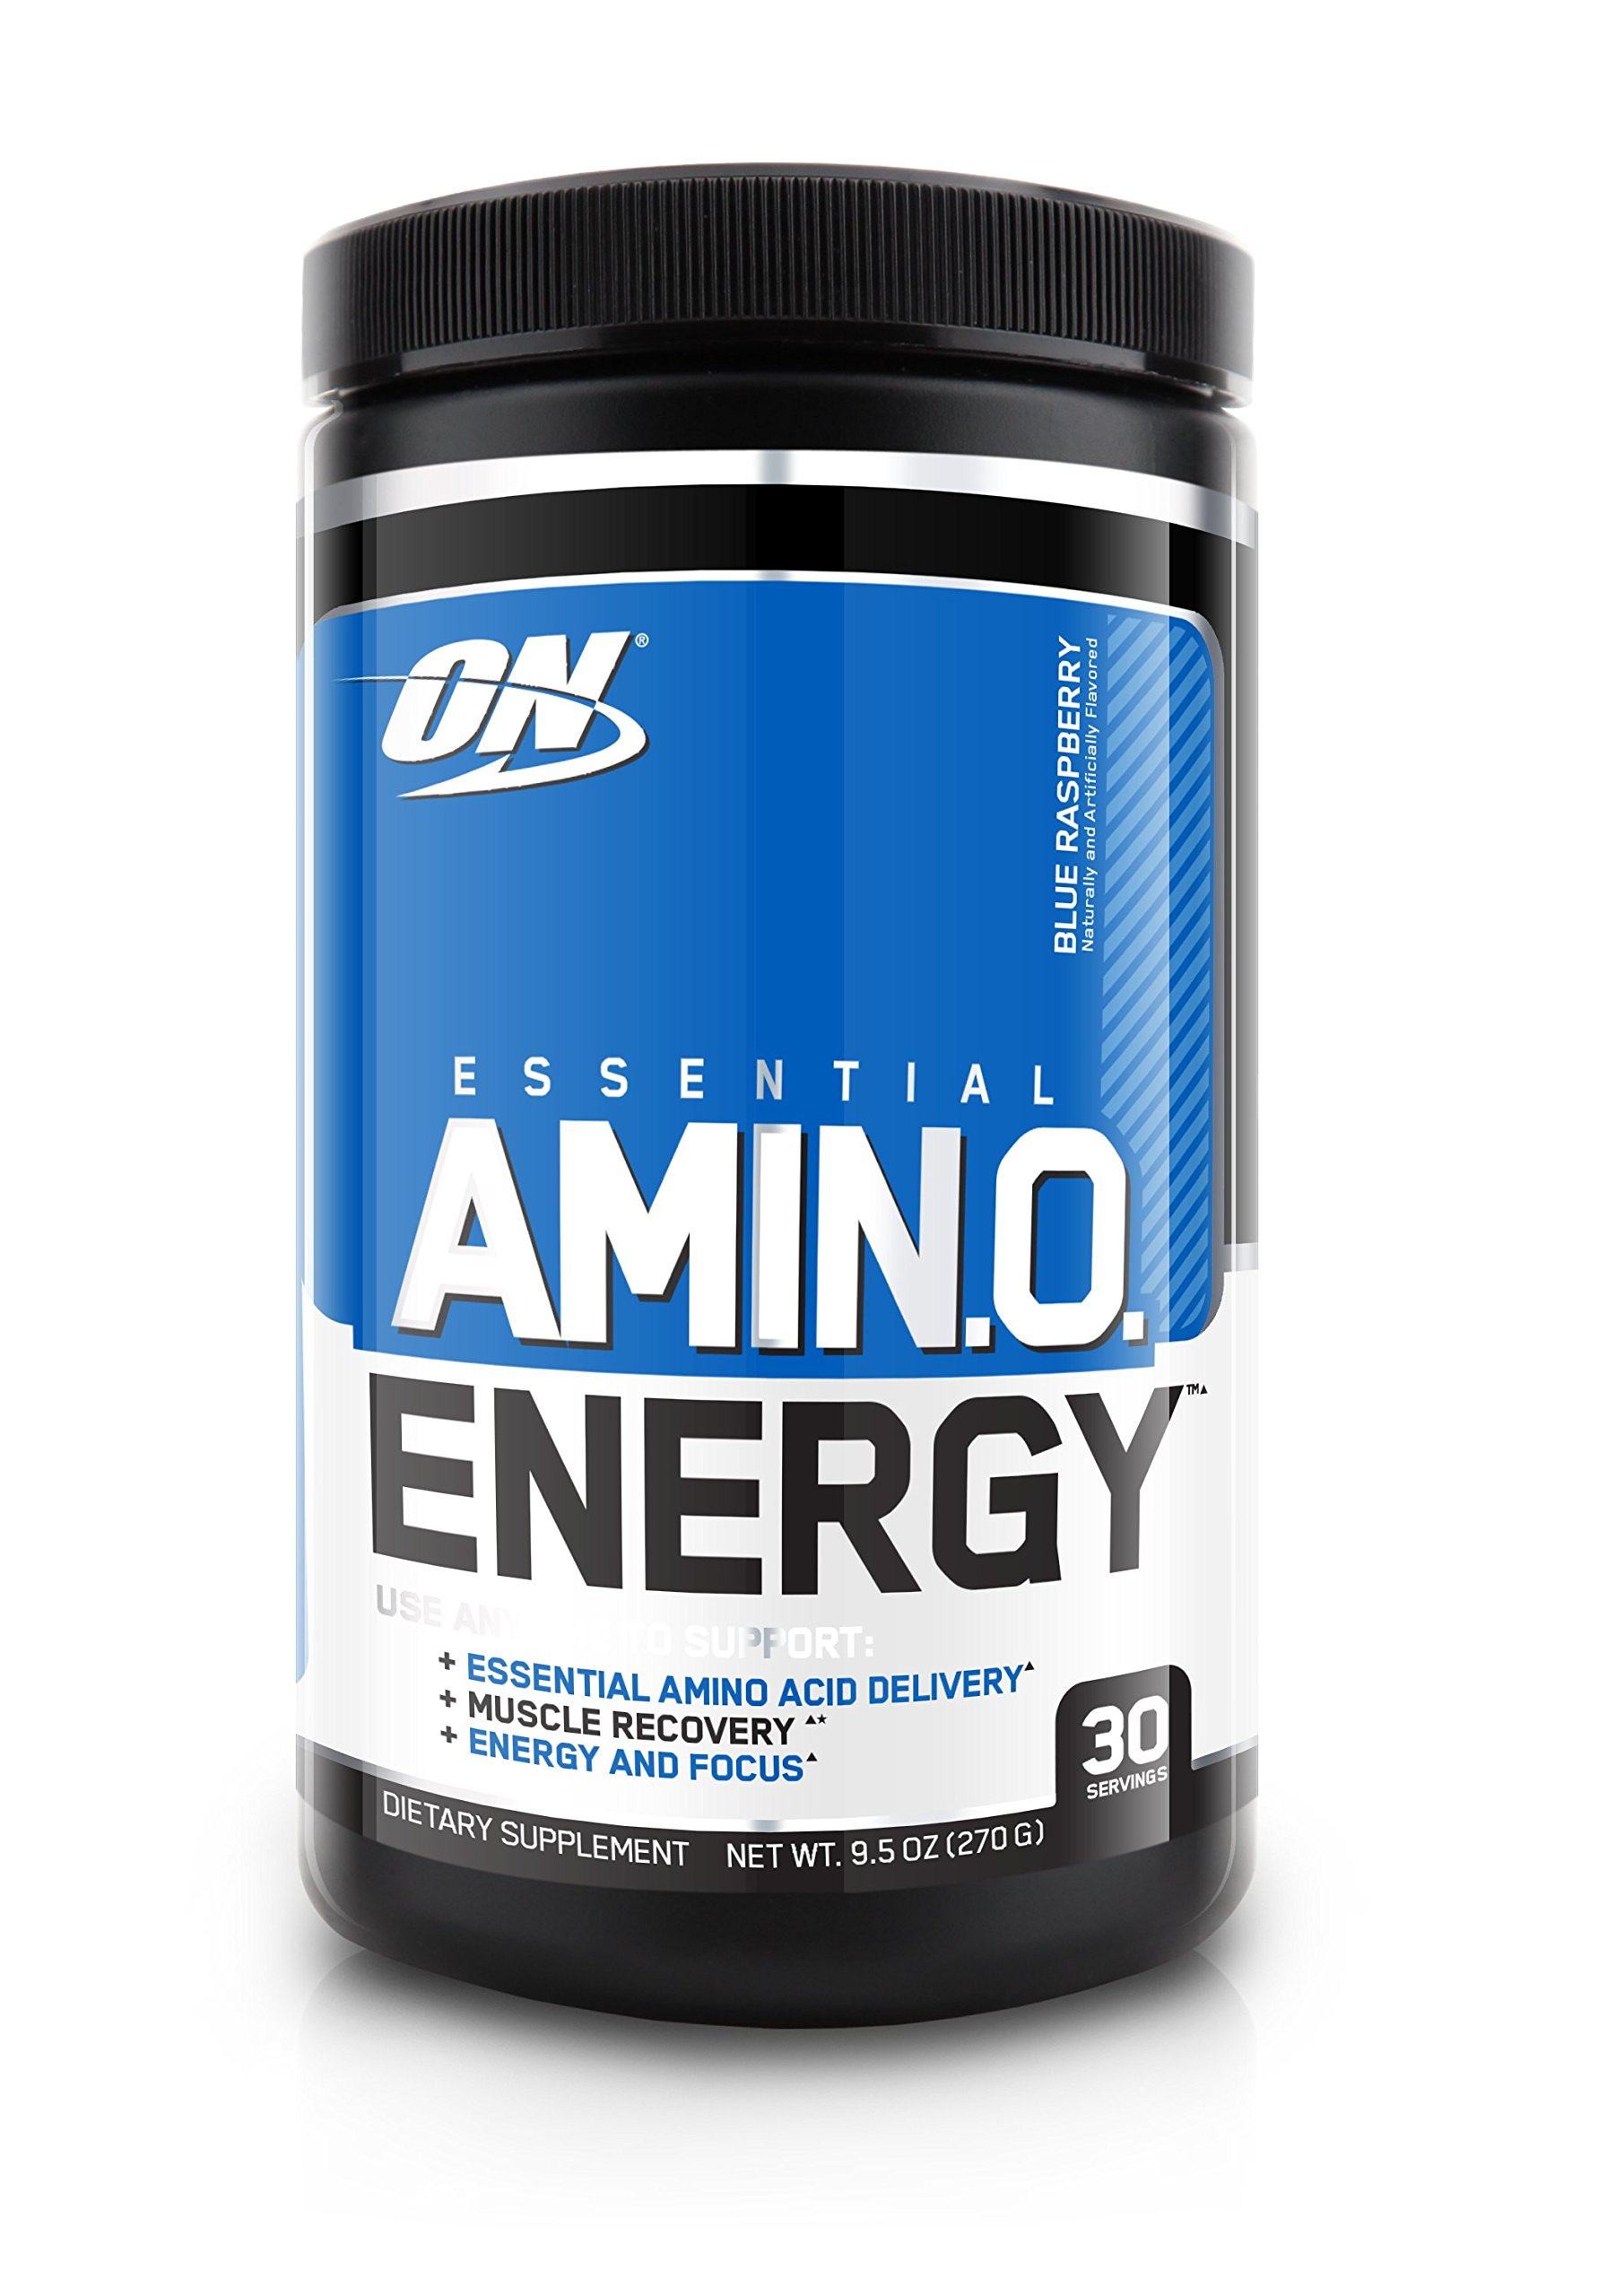 Optimum Nutrition Amino Energy, Blue Raspberry, Preworkout and Essential Amino Acids with Green Tea and Green Coffee Extract, 30 Servings